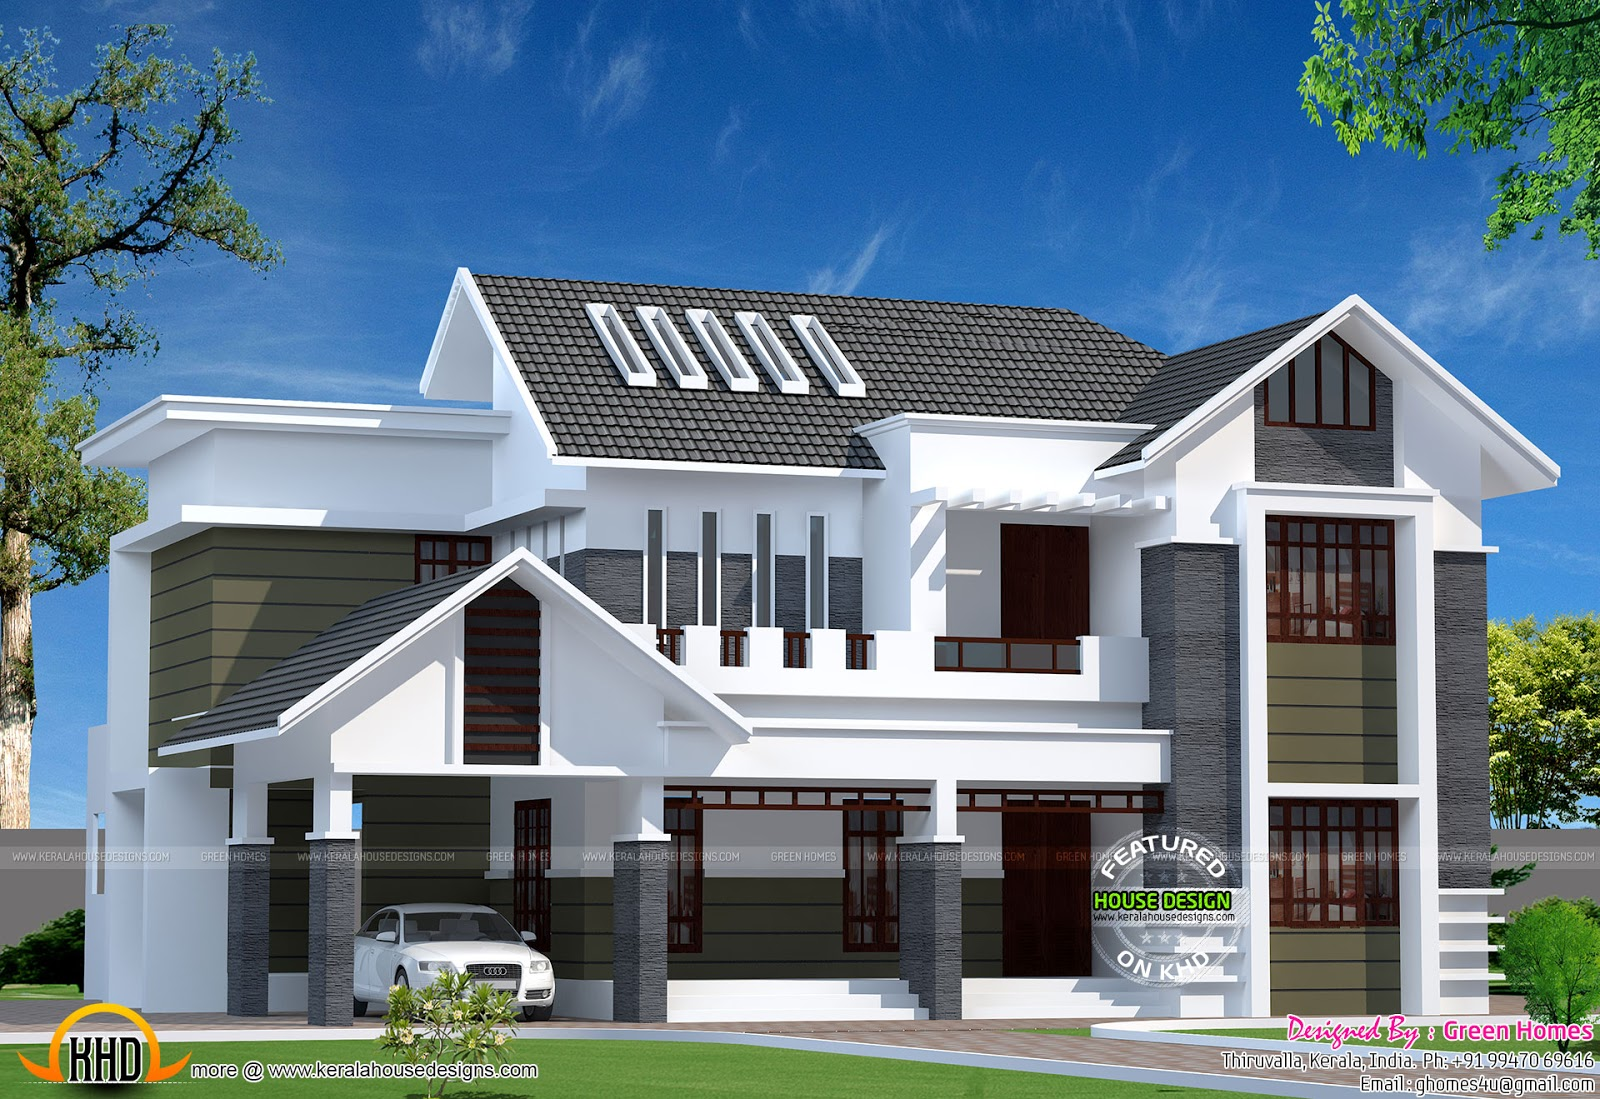 2800 sq ft modern kerala home kerala home design and for Www kerala house designs com